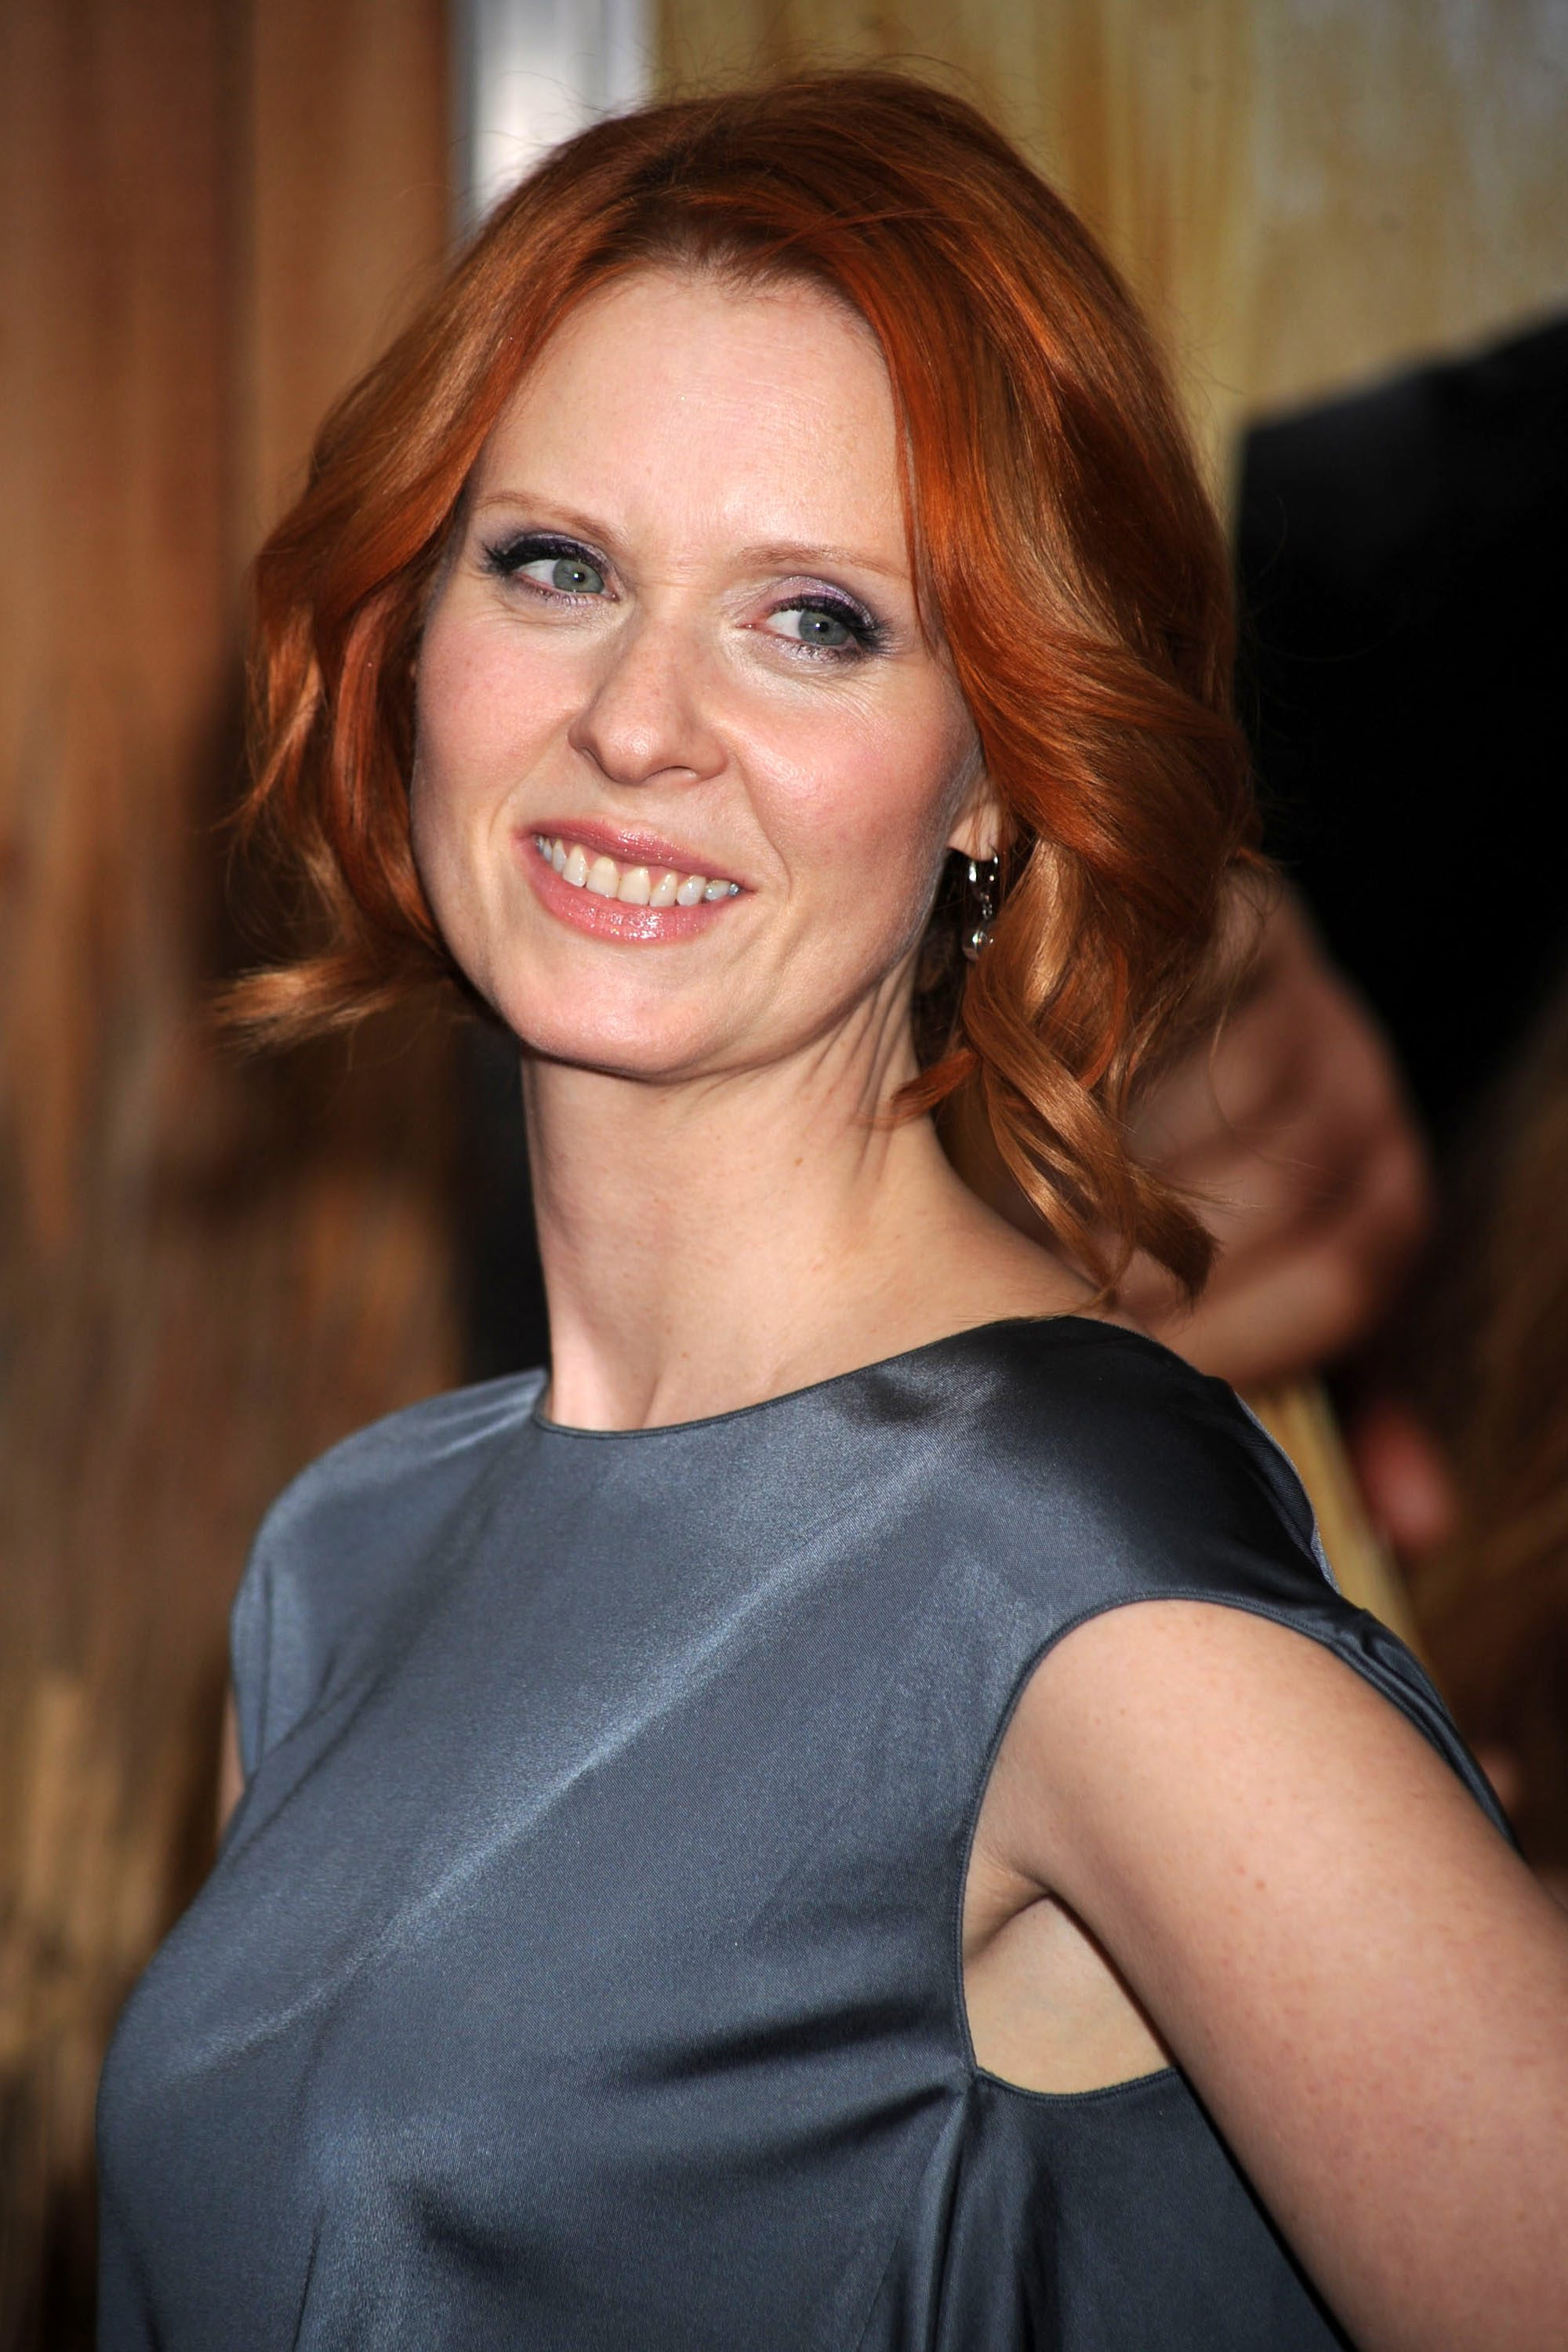 Cynthia Ellen Nixon born April 9 1966 is an American actress activist and politician Best known for her portrayal of Miranda Hobbes in the HBO series Sex and